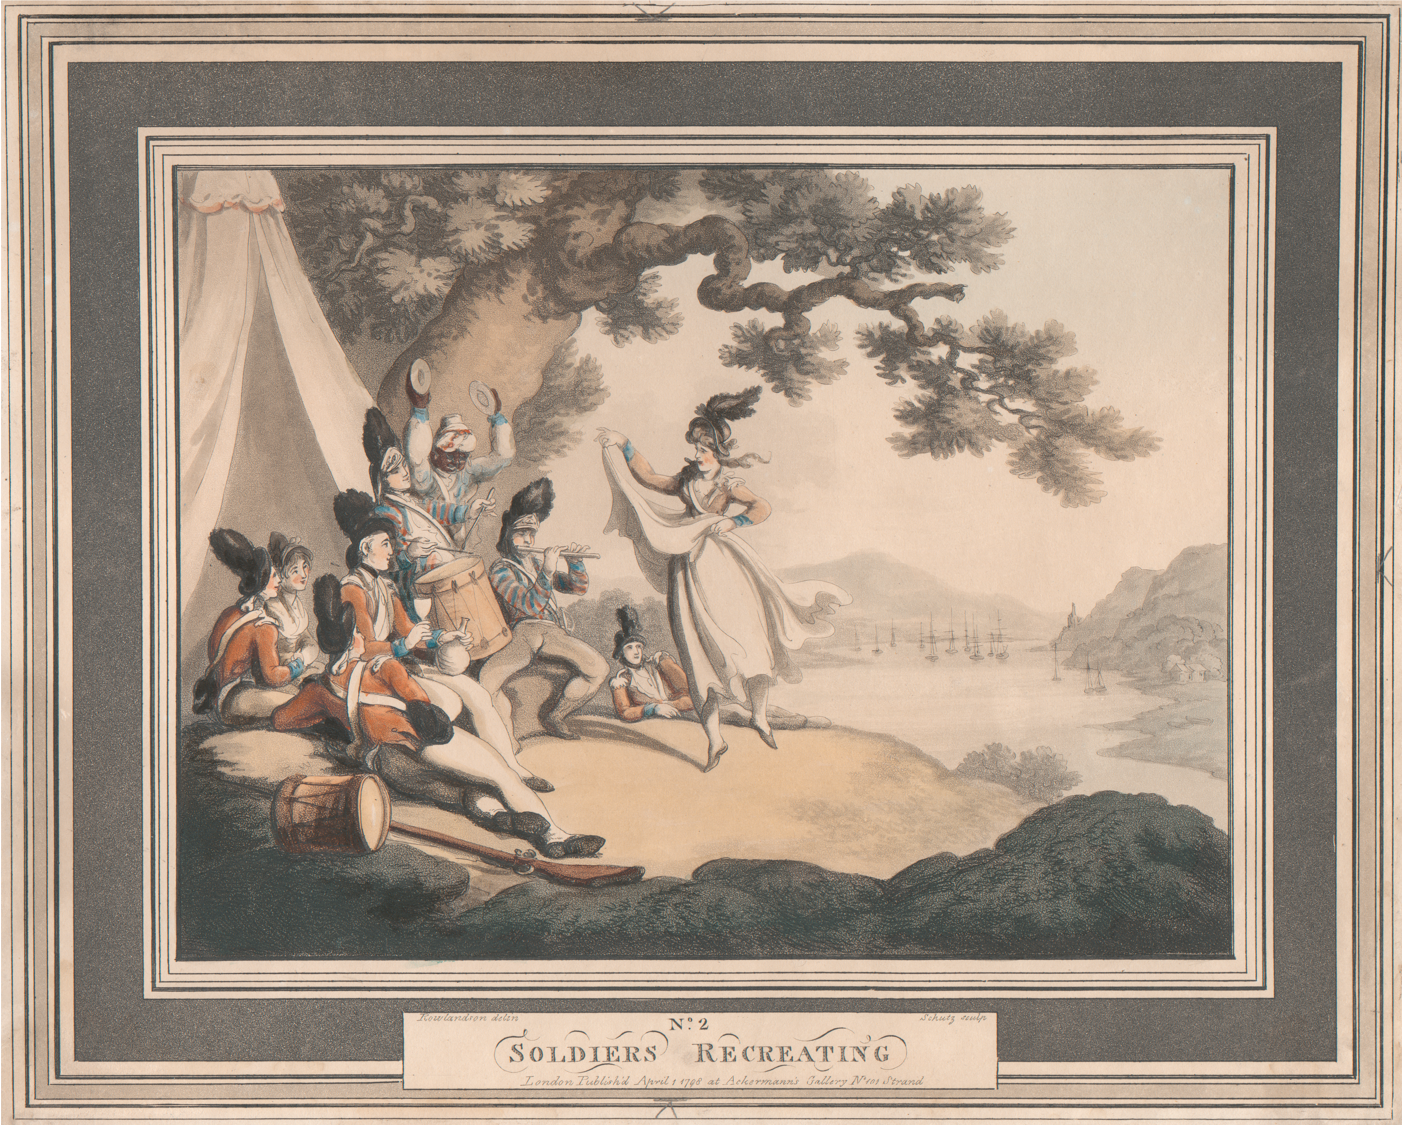 Heinrich Joseph Schutz, Thomas Rowlandson, Soldiers Recreating, British Army, Military Wives, Women, Recreation, St. John's Cemetery Project, Old Parramattans, St. John's First Fleeters, First Fleet, Ann Smith